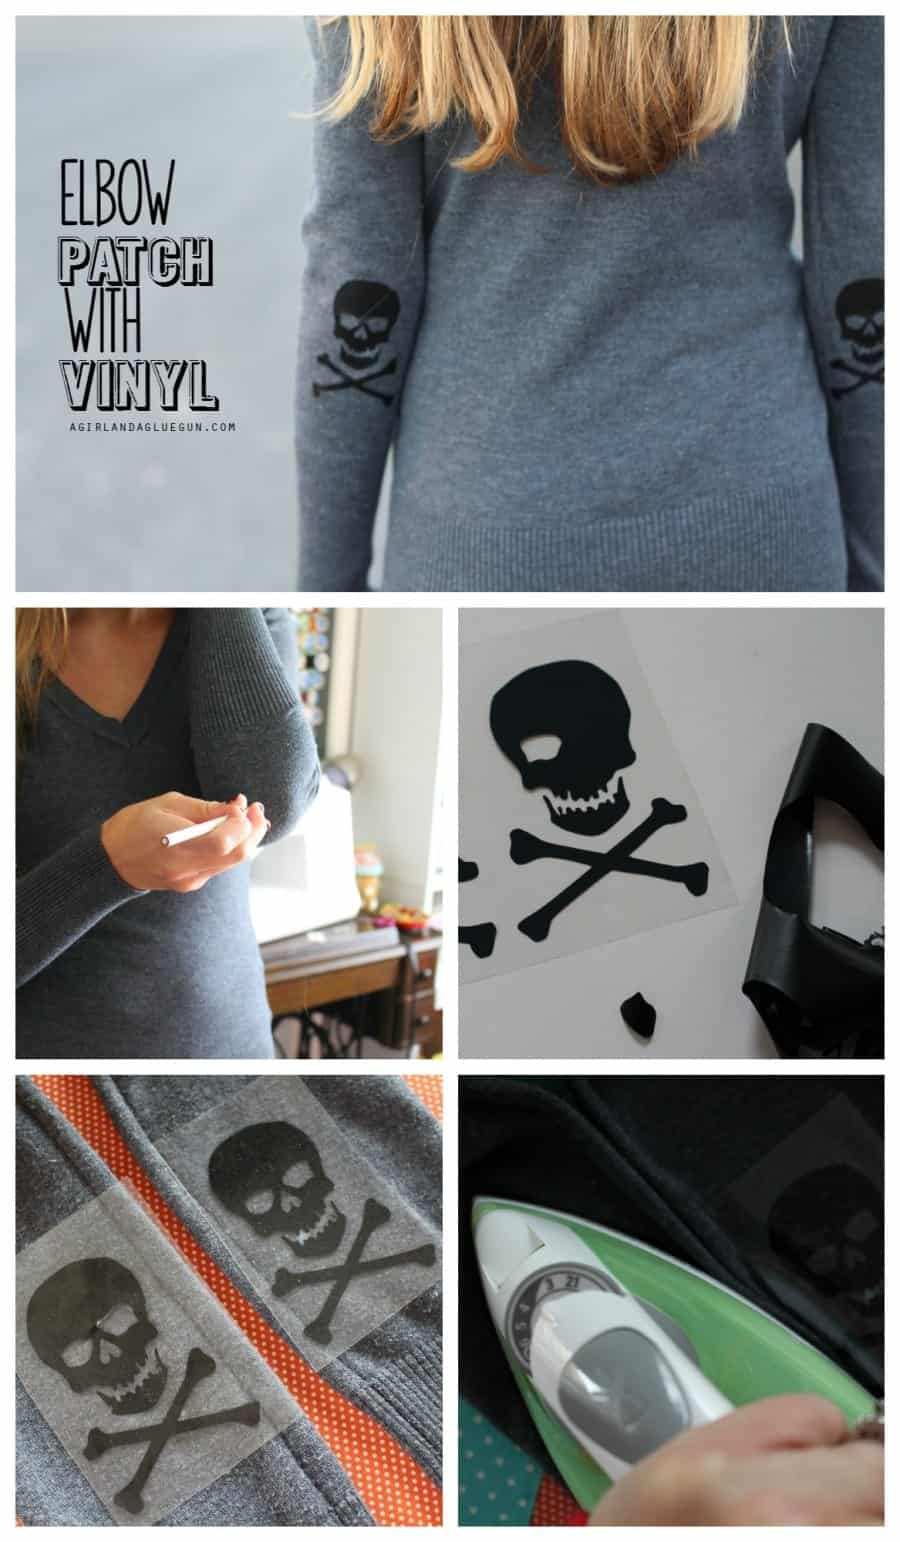 Add a fun elbow patch detail with expressions iron on heat transfer vinyl